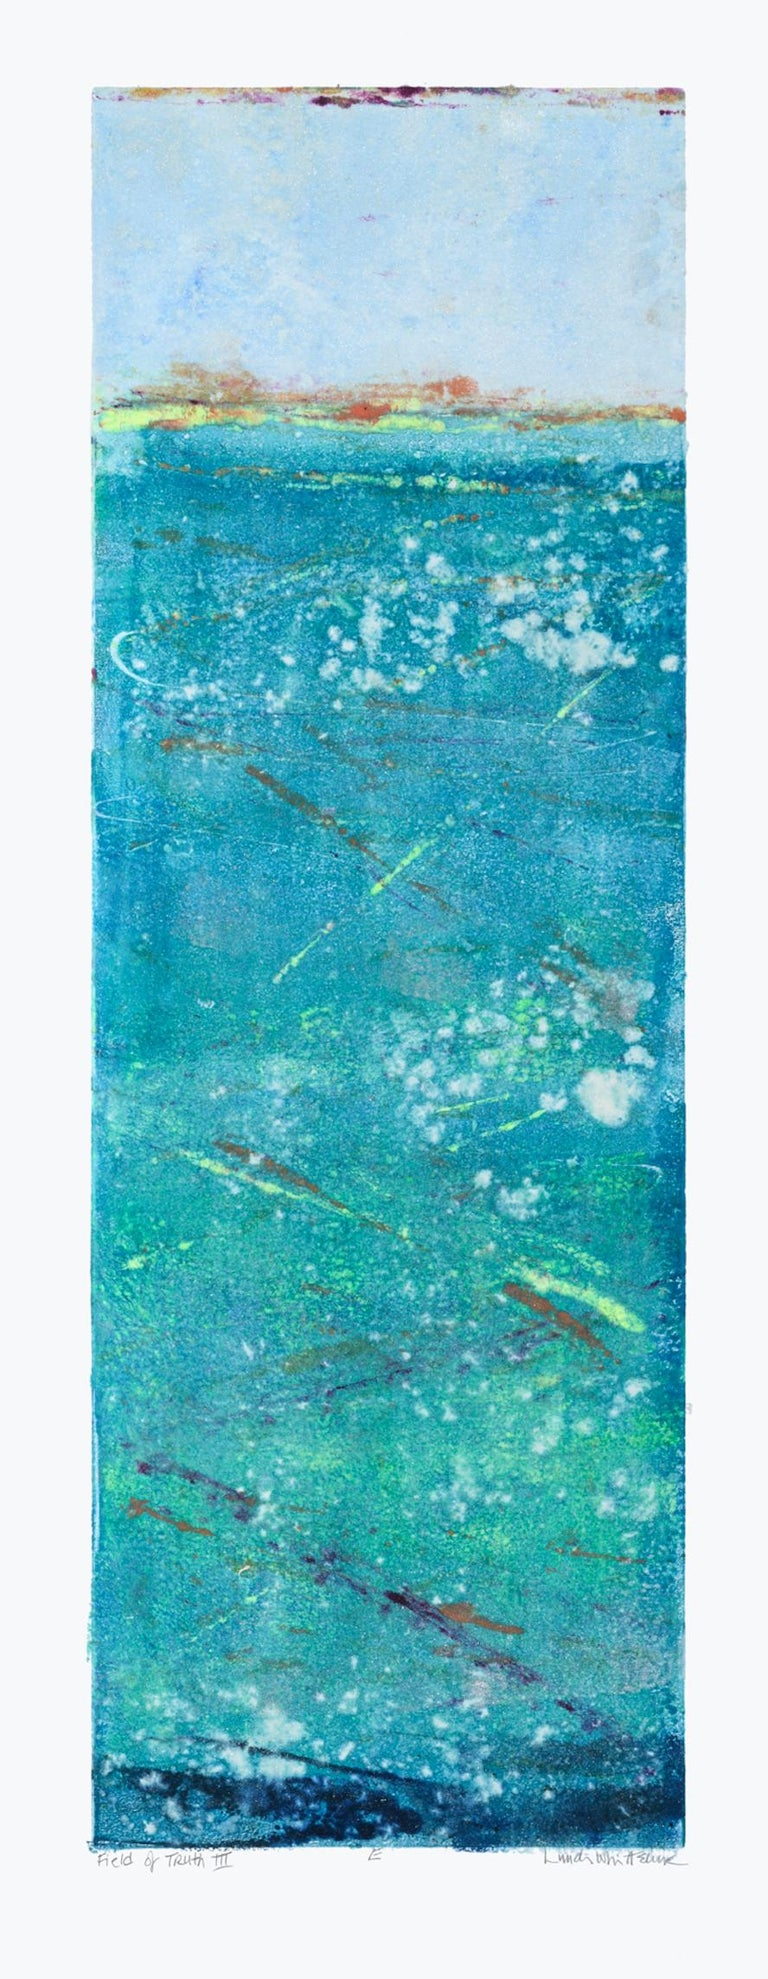 """""""Field of Truth III 'E"""" Mixed Media Abstract by Maui Artist - Mixed Media Art by Linda Whittemore"""